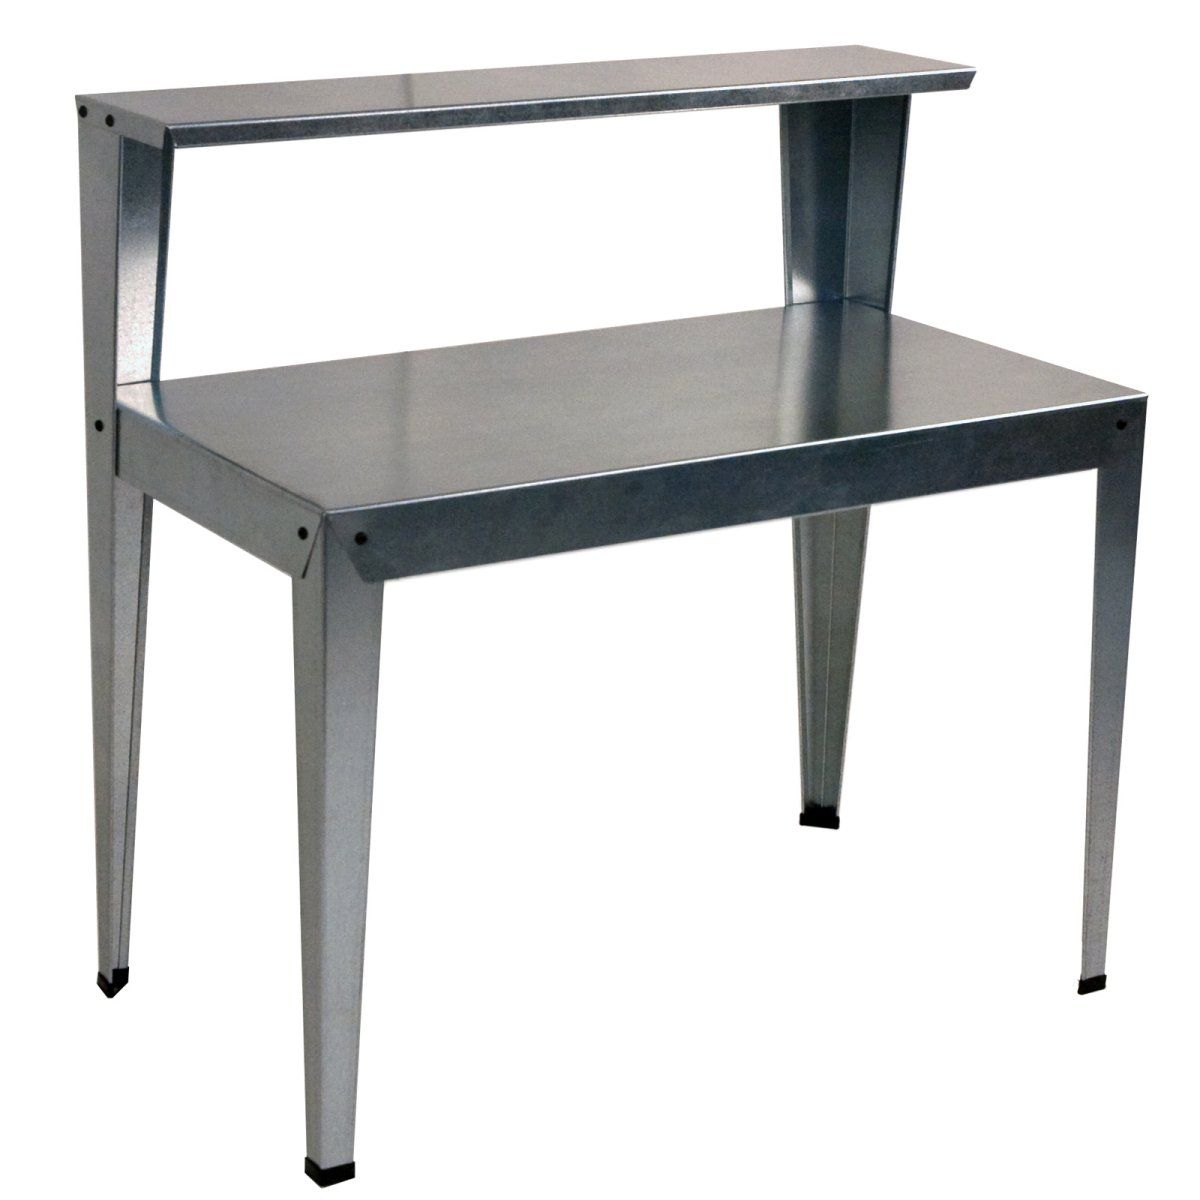 H D x 31.50 in 2-Bench W x 19.75 in Dimension: 45 in Palram Greenhouse Galvanized Steel Potting Bench